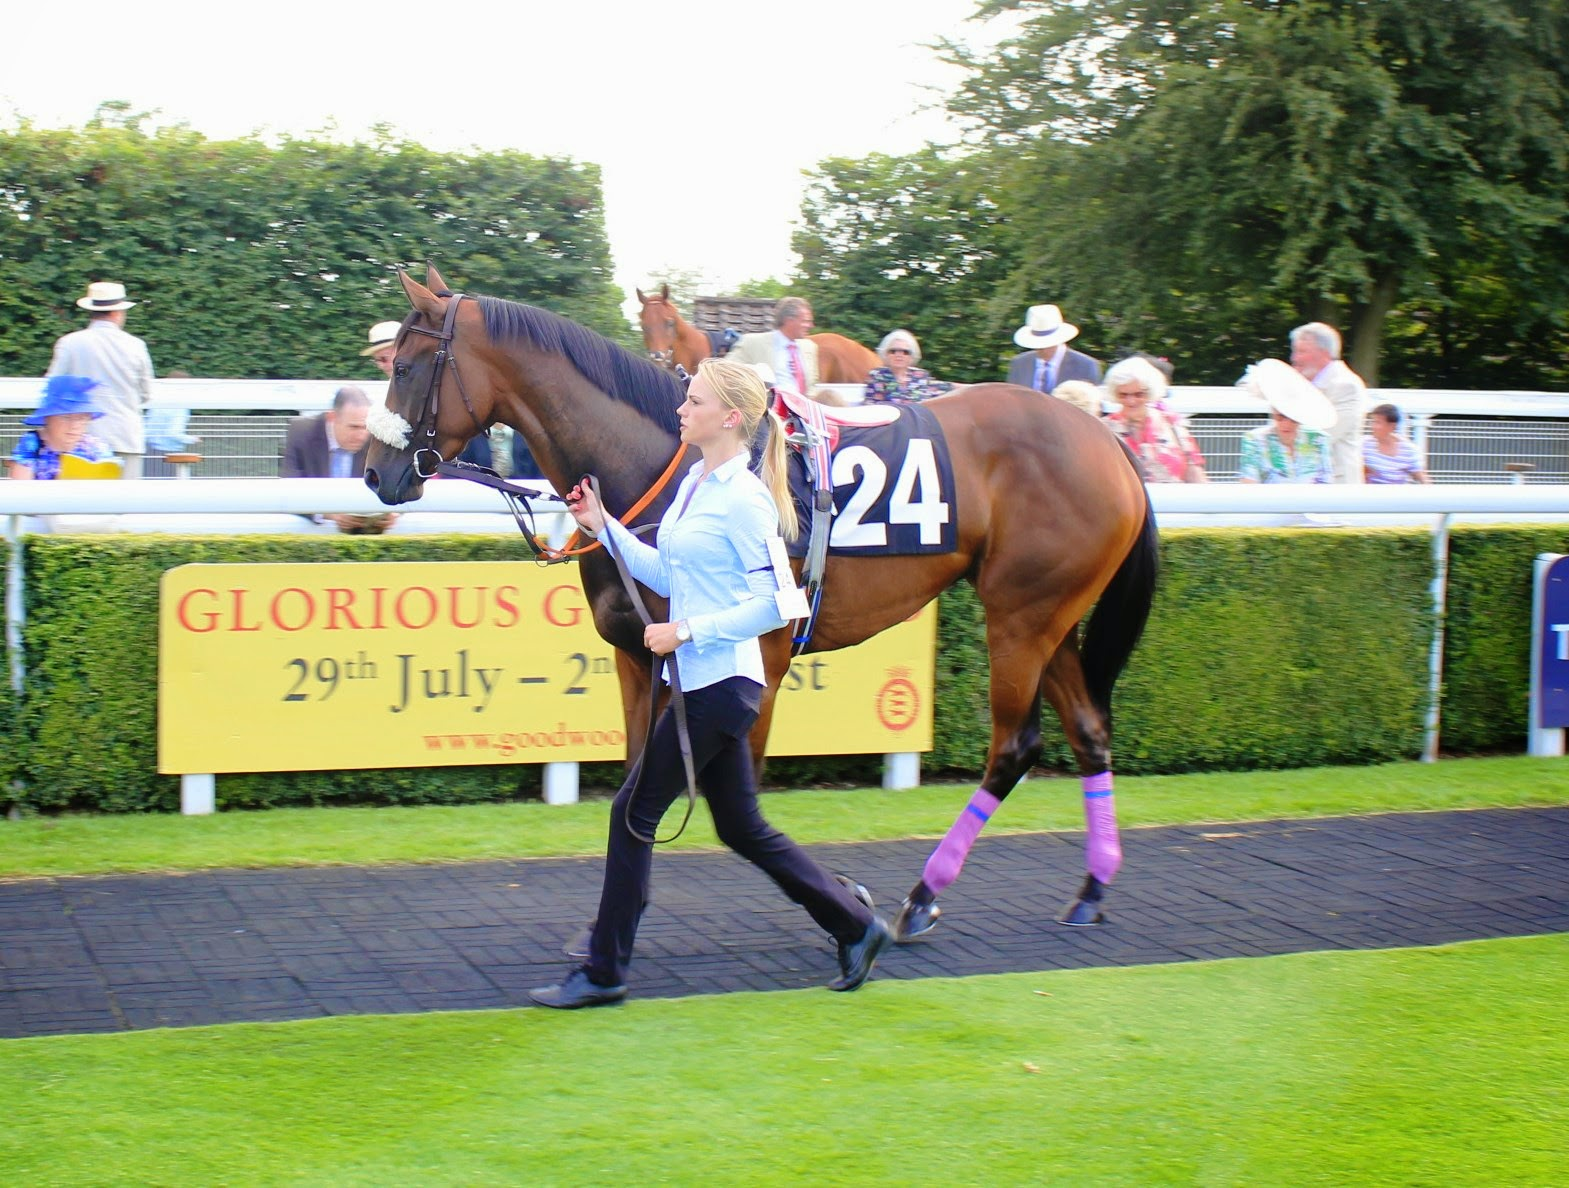 Glorious Goodwood 2014